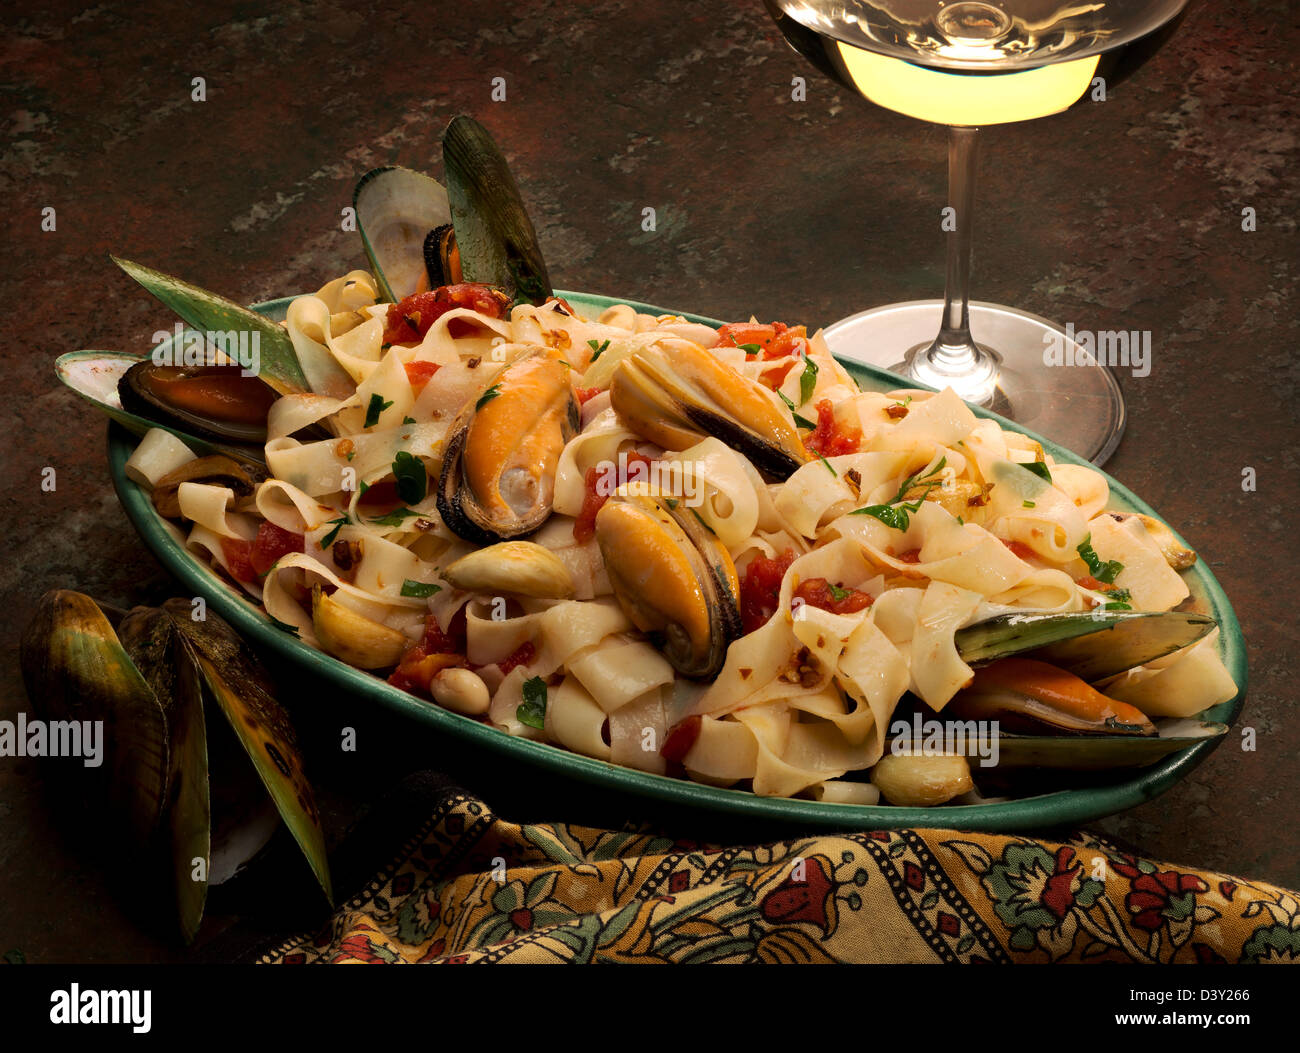 Pasta Platter With Green Mussels,tagliatelle Pasta, Garlic Stock ...